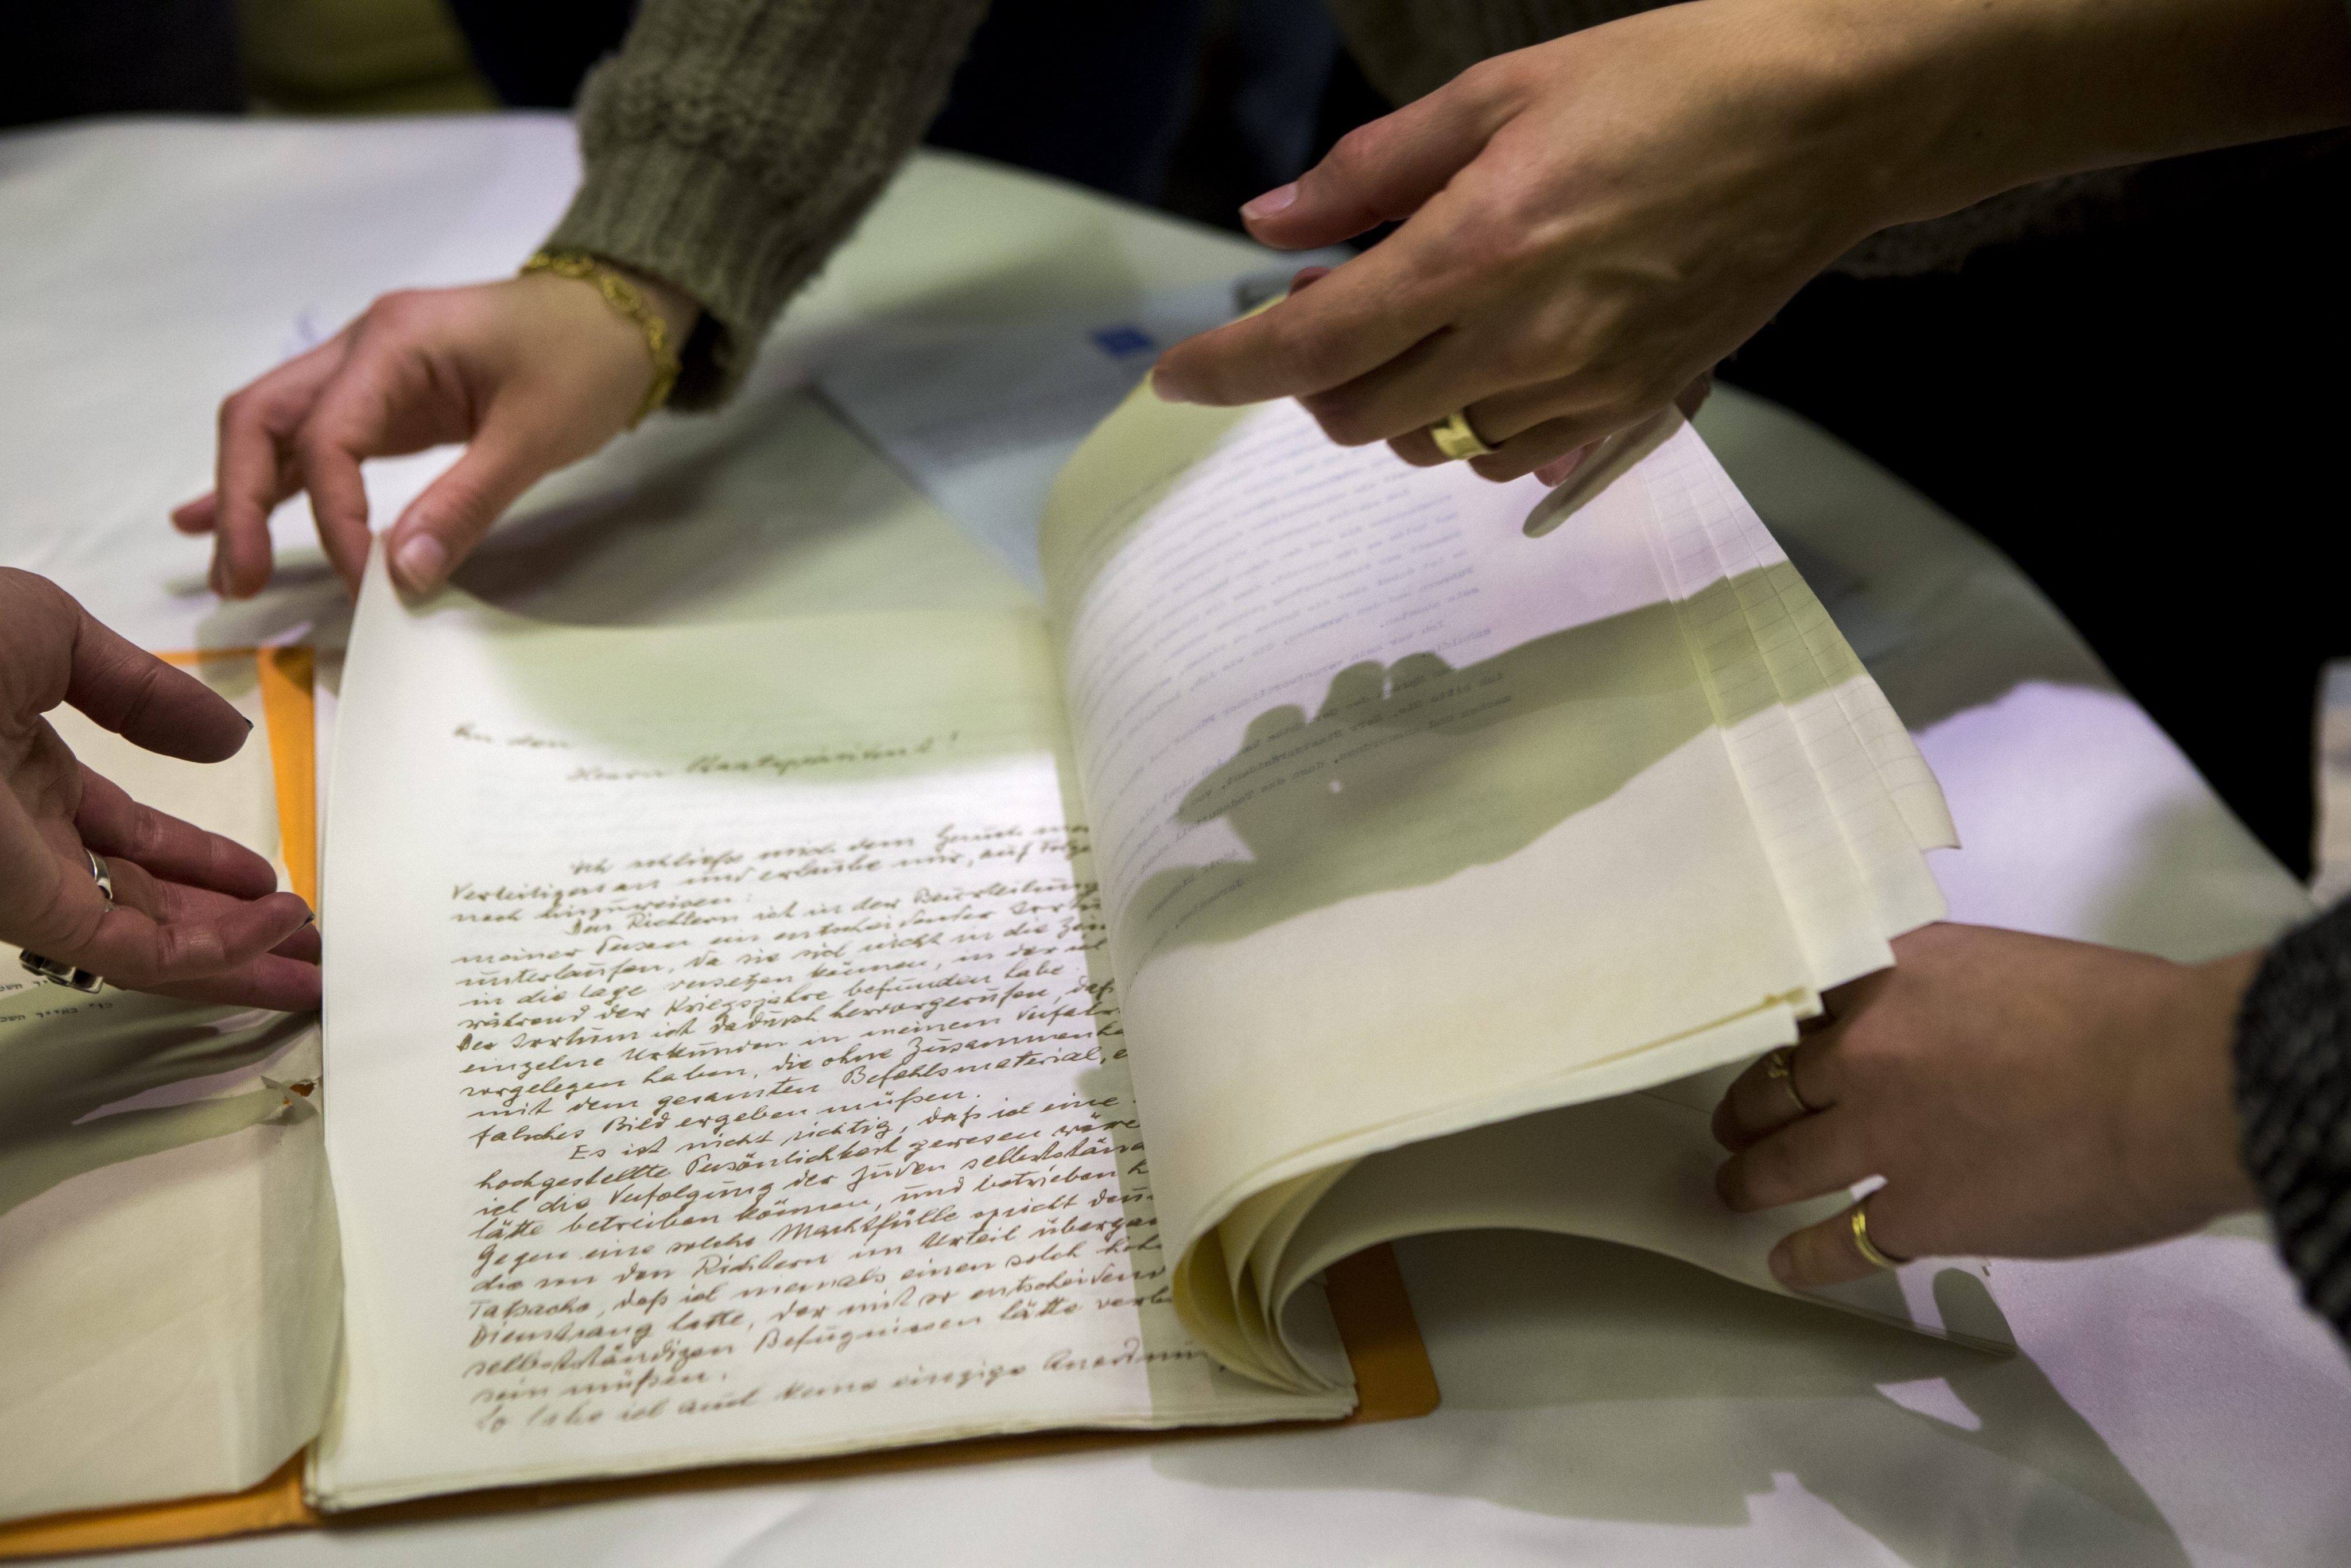 A newly found pardon request by Nazi Adolf Eichmann is displayed in the Israeli president's residence in Jerusalem, on Jan. 27, 2016.